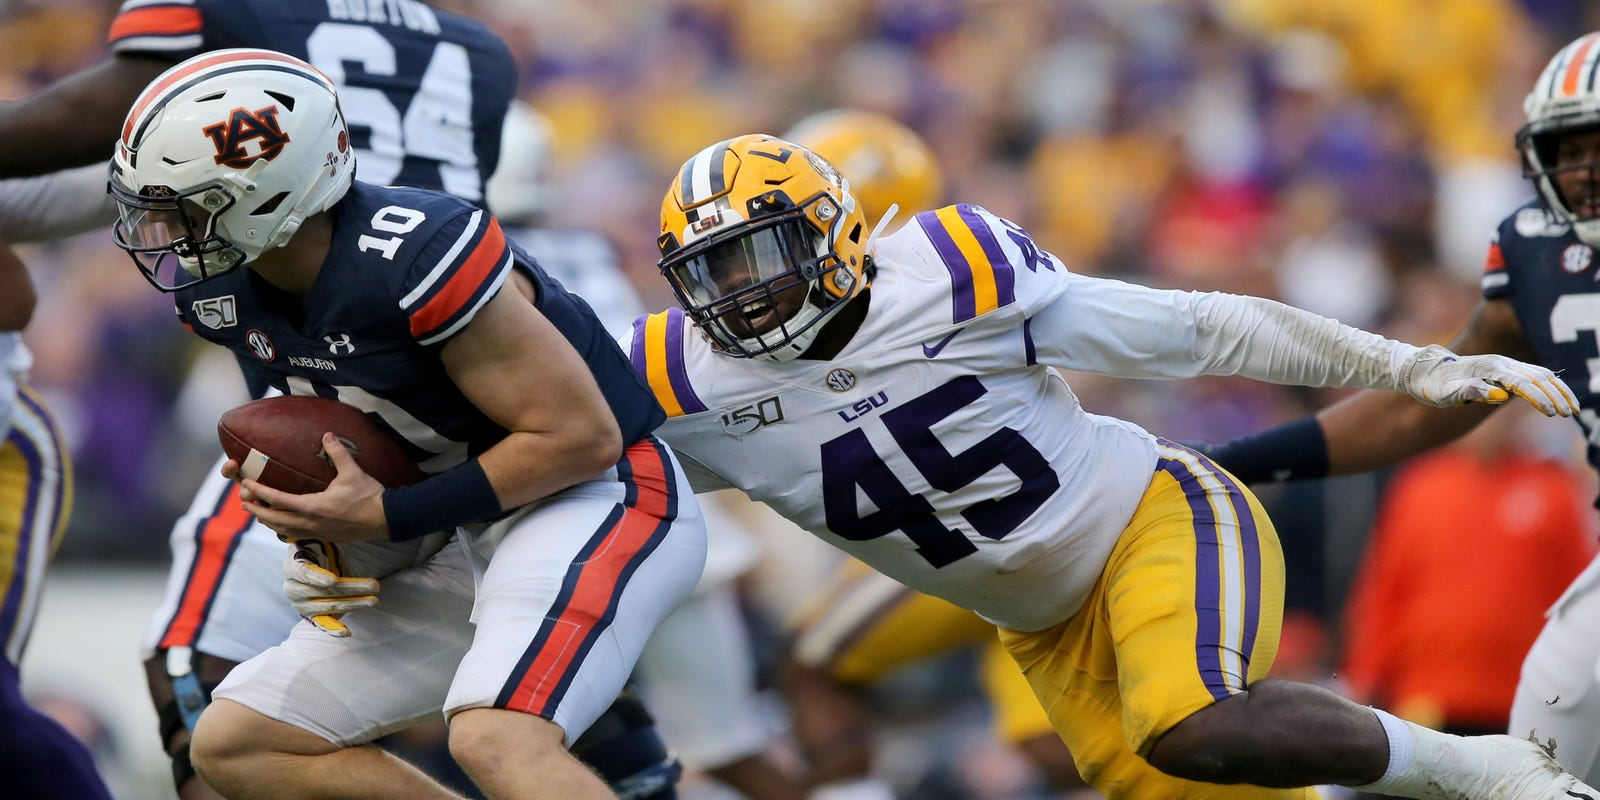 LSU Tigers football: Divinity ineligible, not out for 'personal reasons'